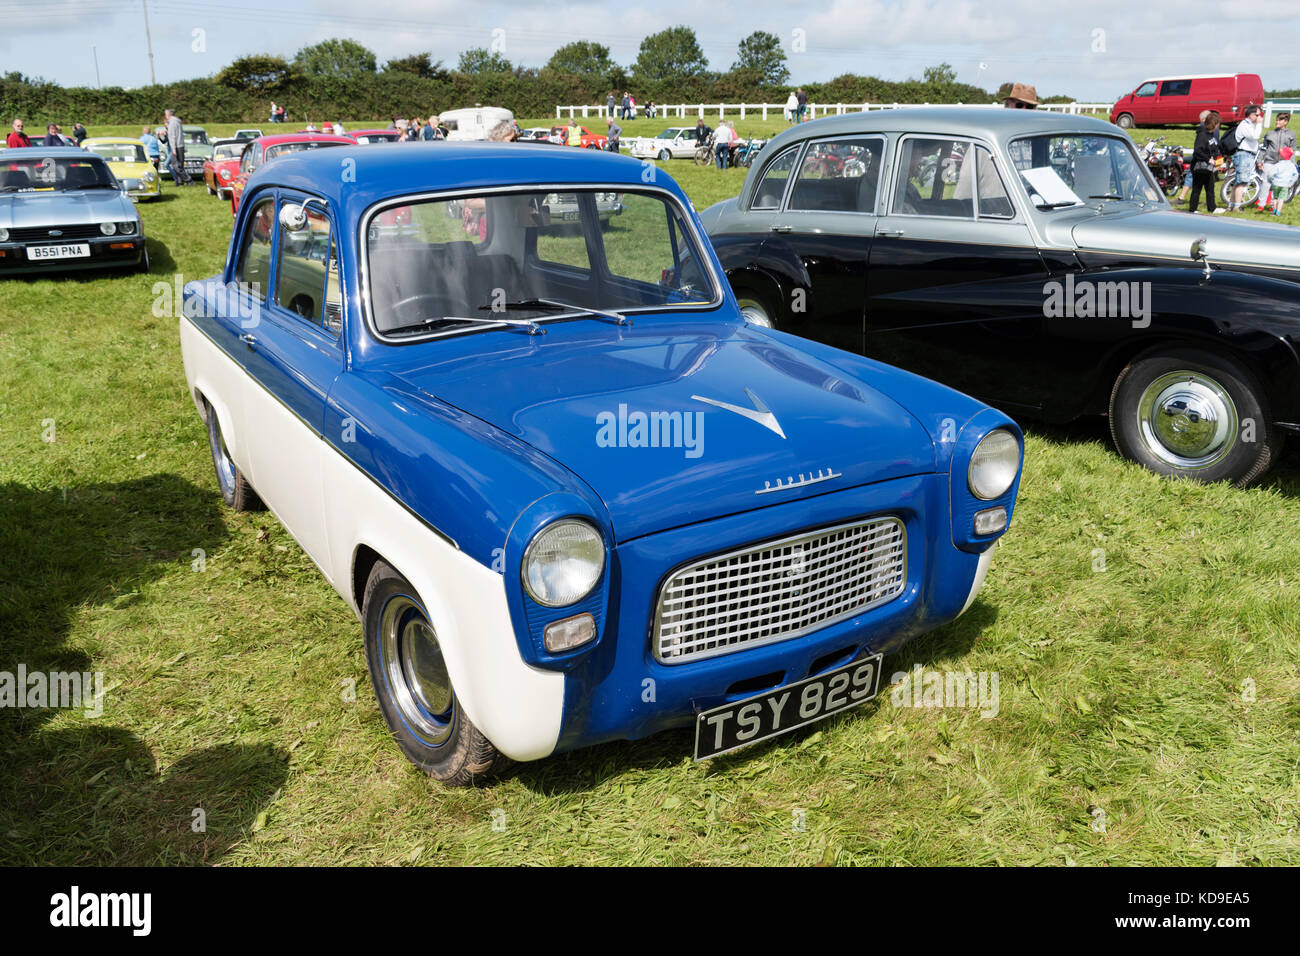 a 1960's ford popular - Stock Image